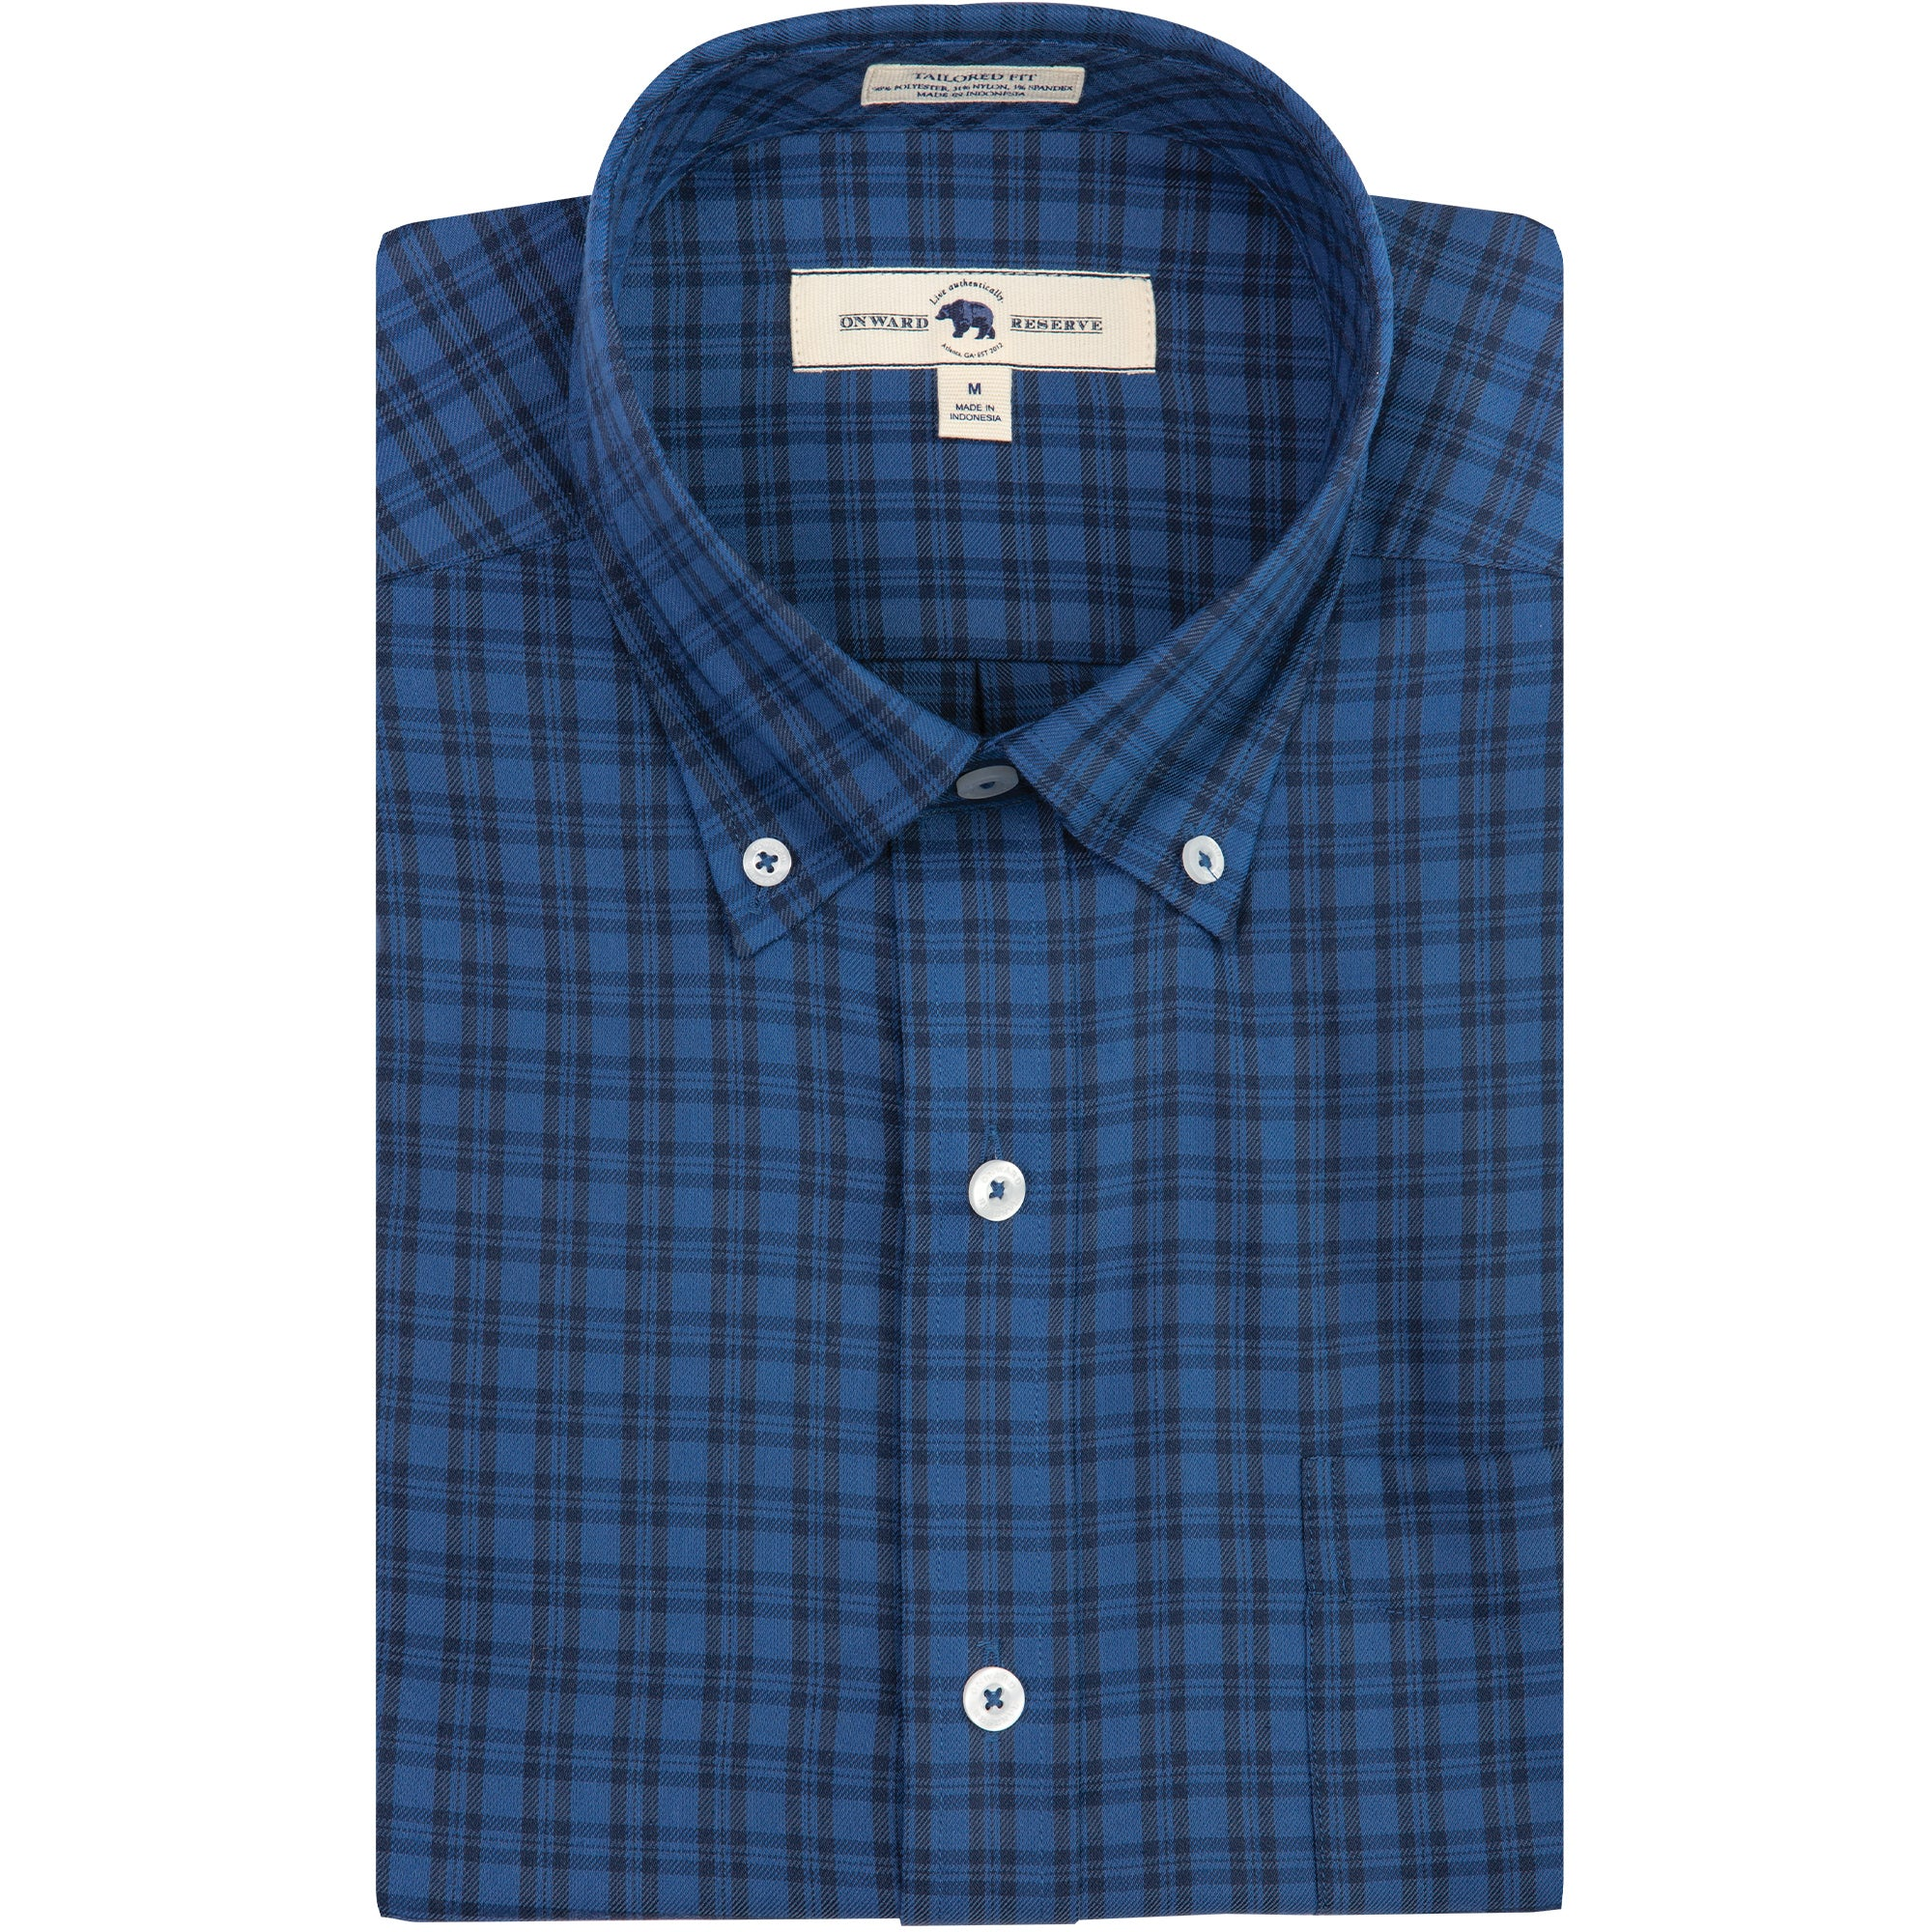 Royal/Navy Plaid Tailored Fit Performance Twill Button Down - OnwardReserve